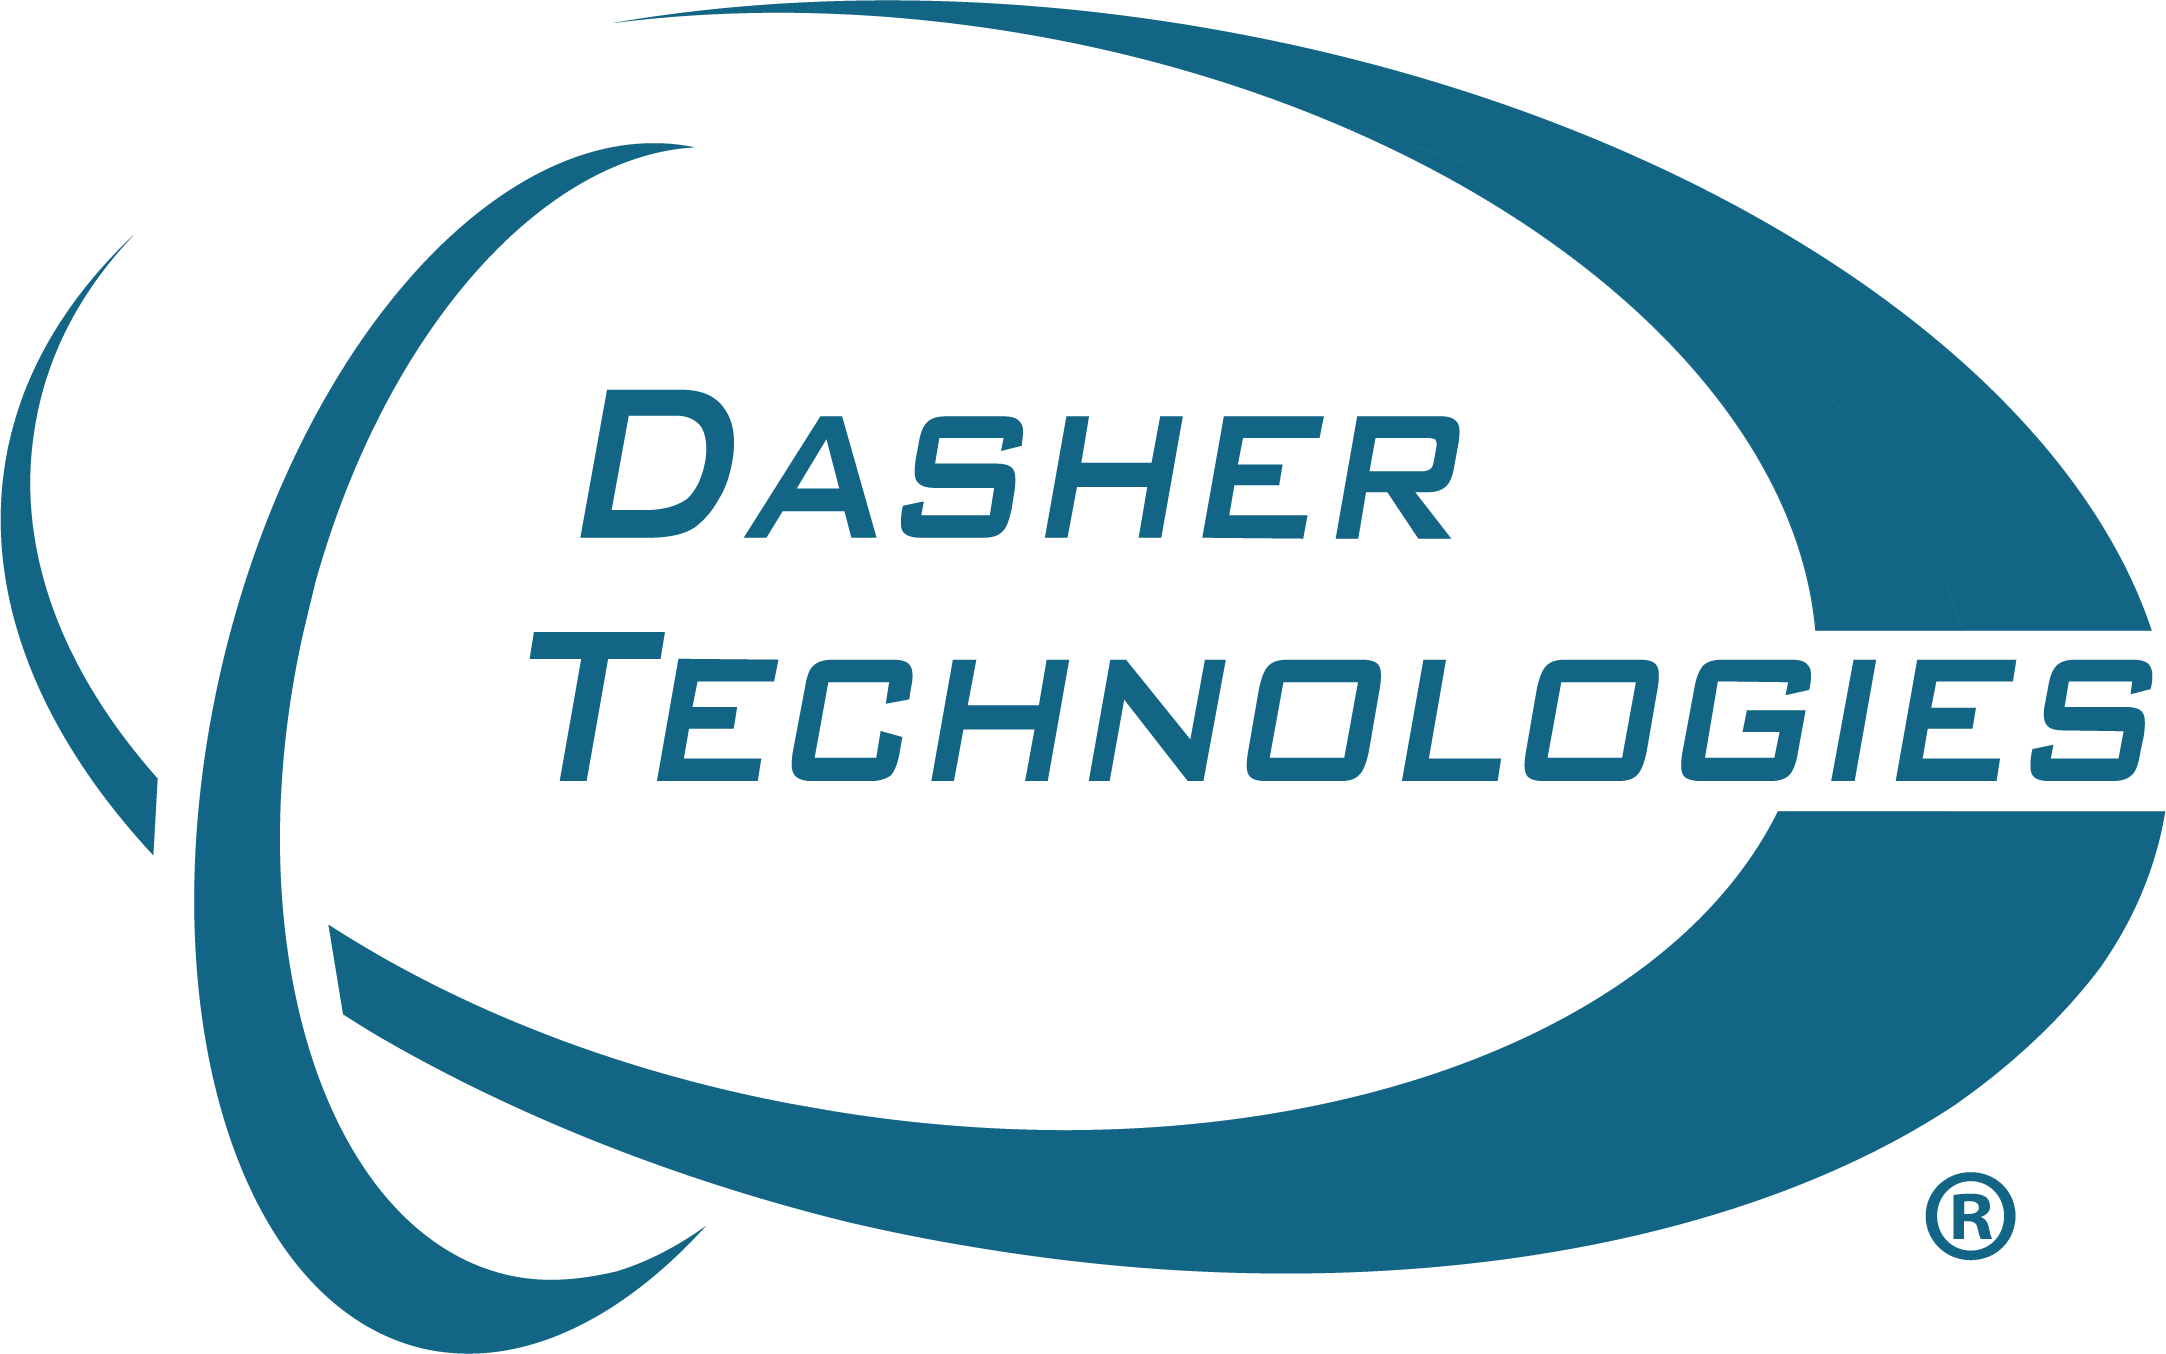 dasher-darkblue.png